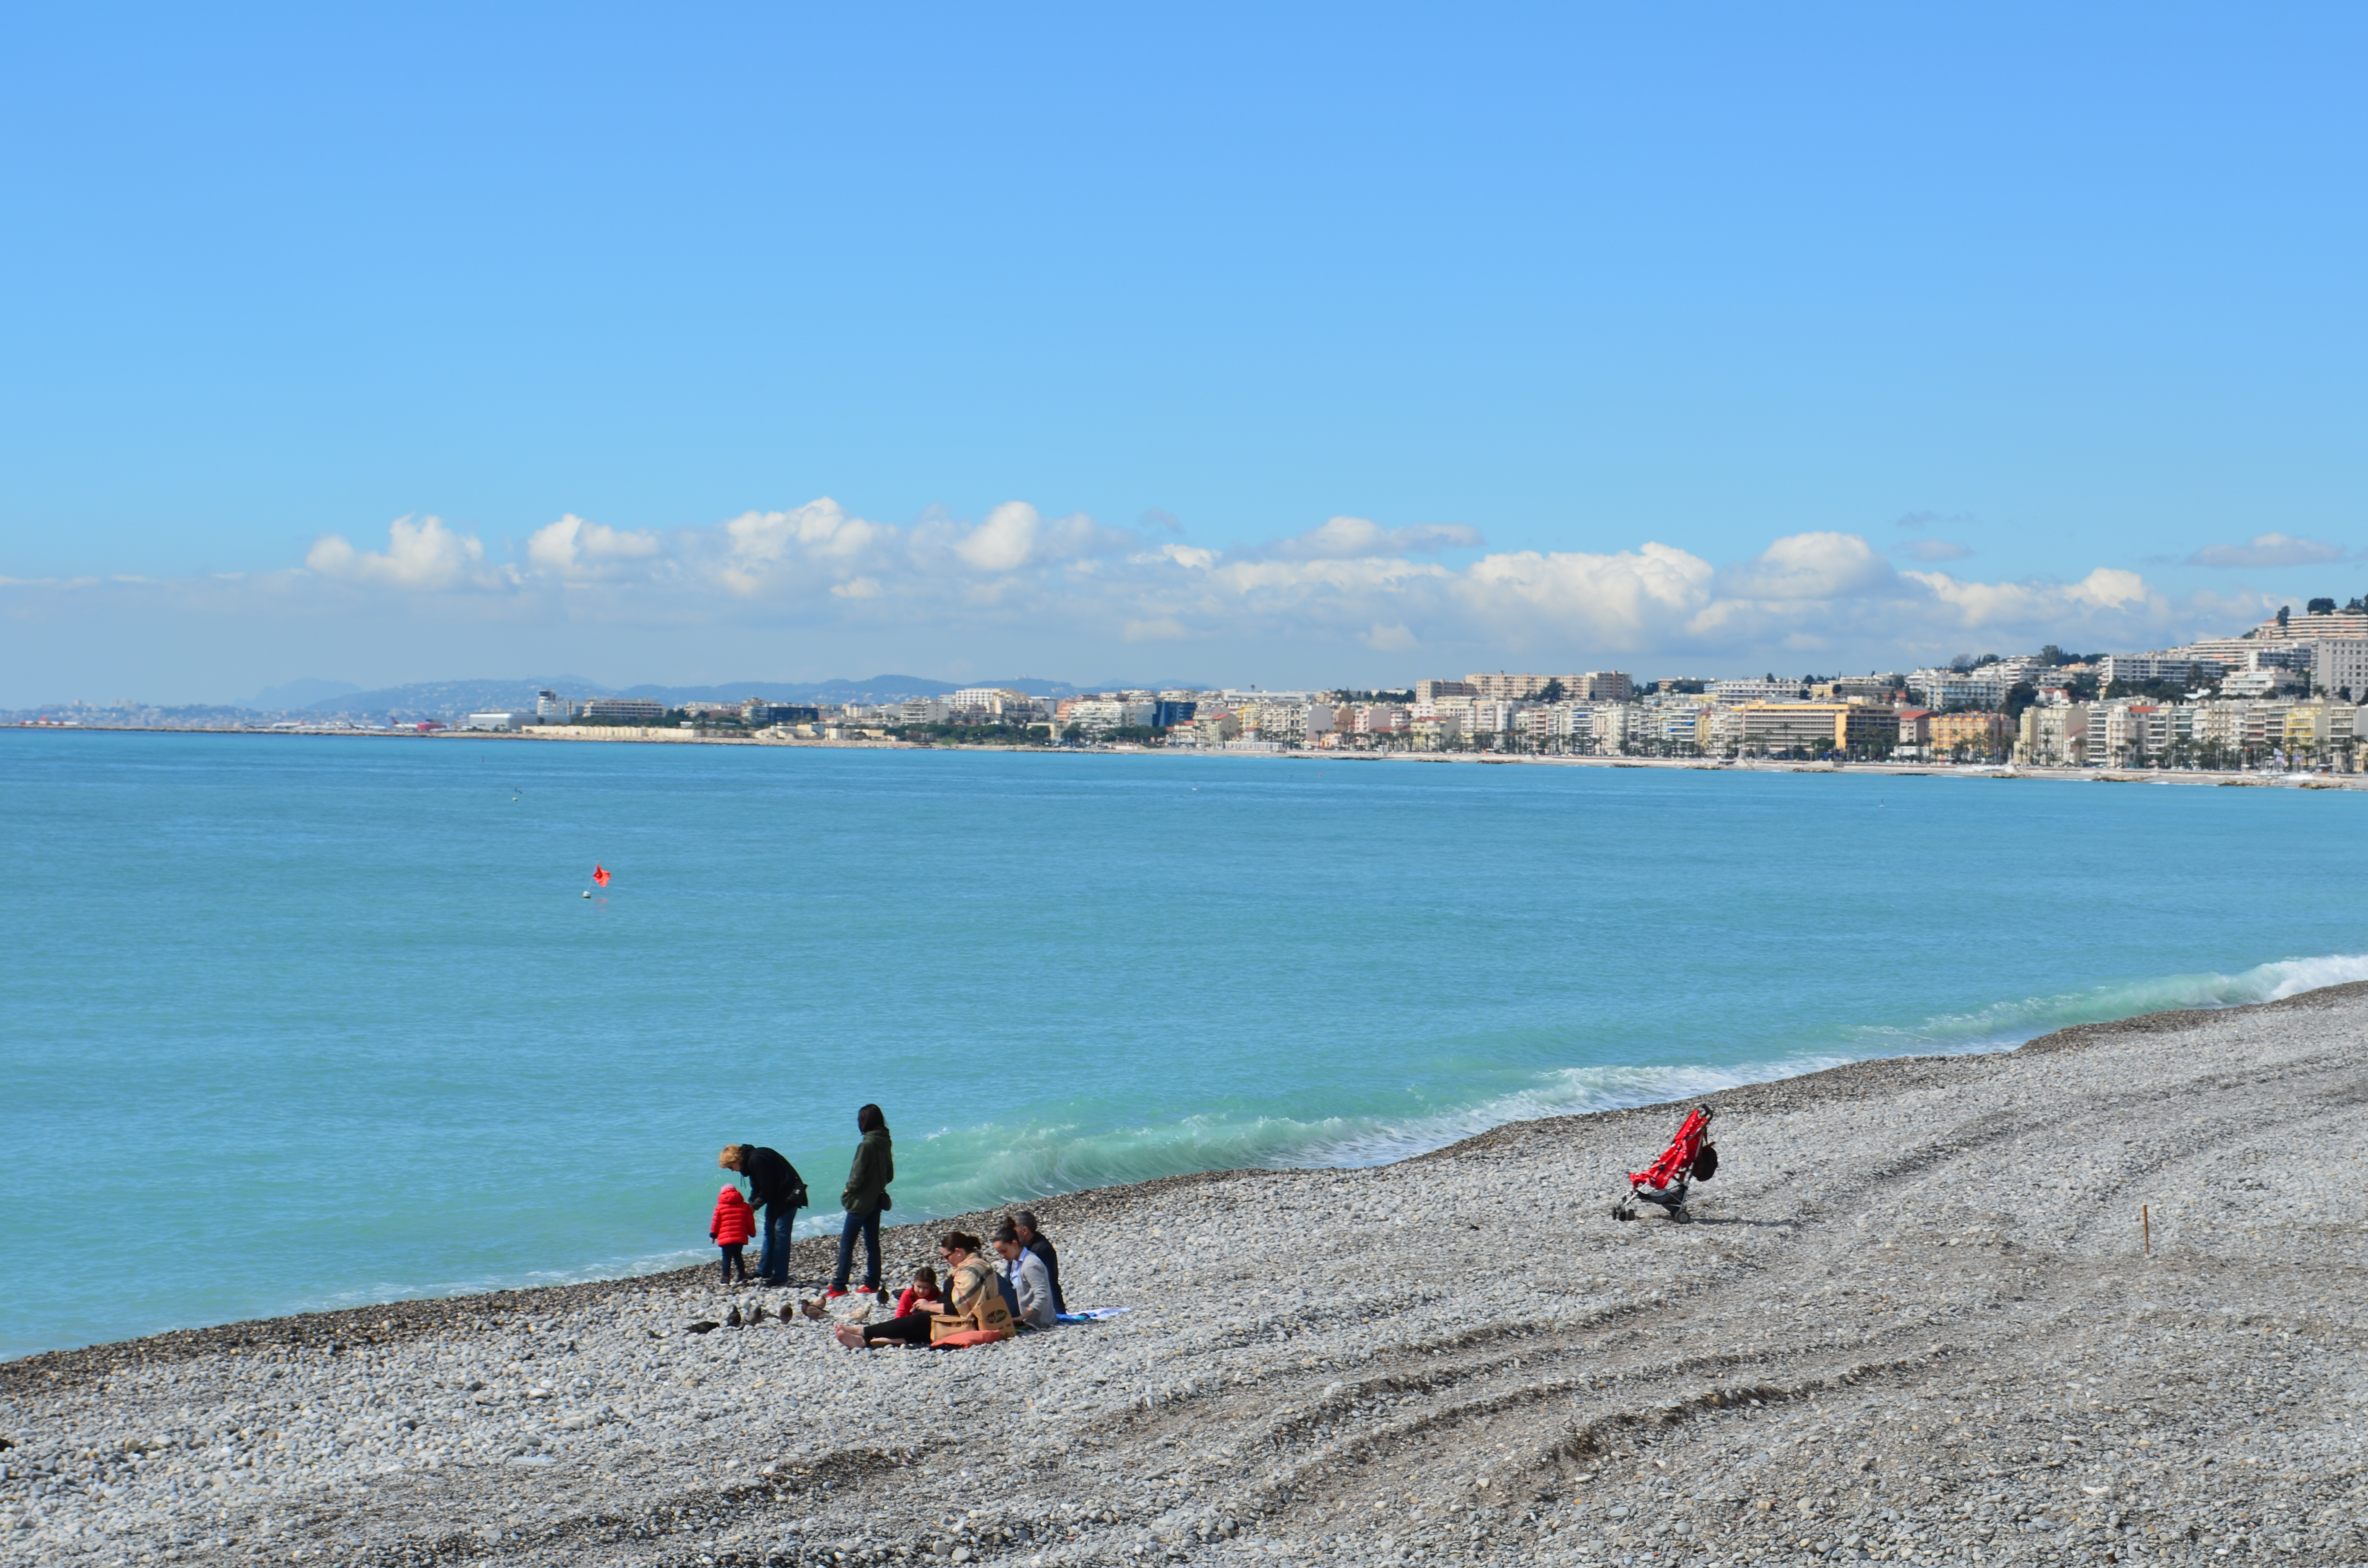 Promenade Des Anglais Archives Passion For Hospitality